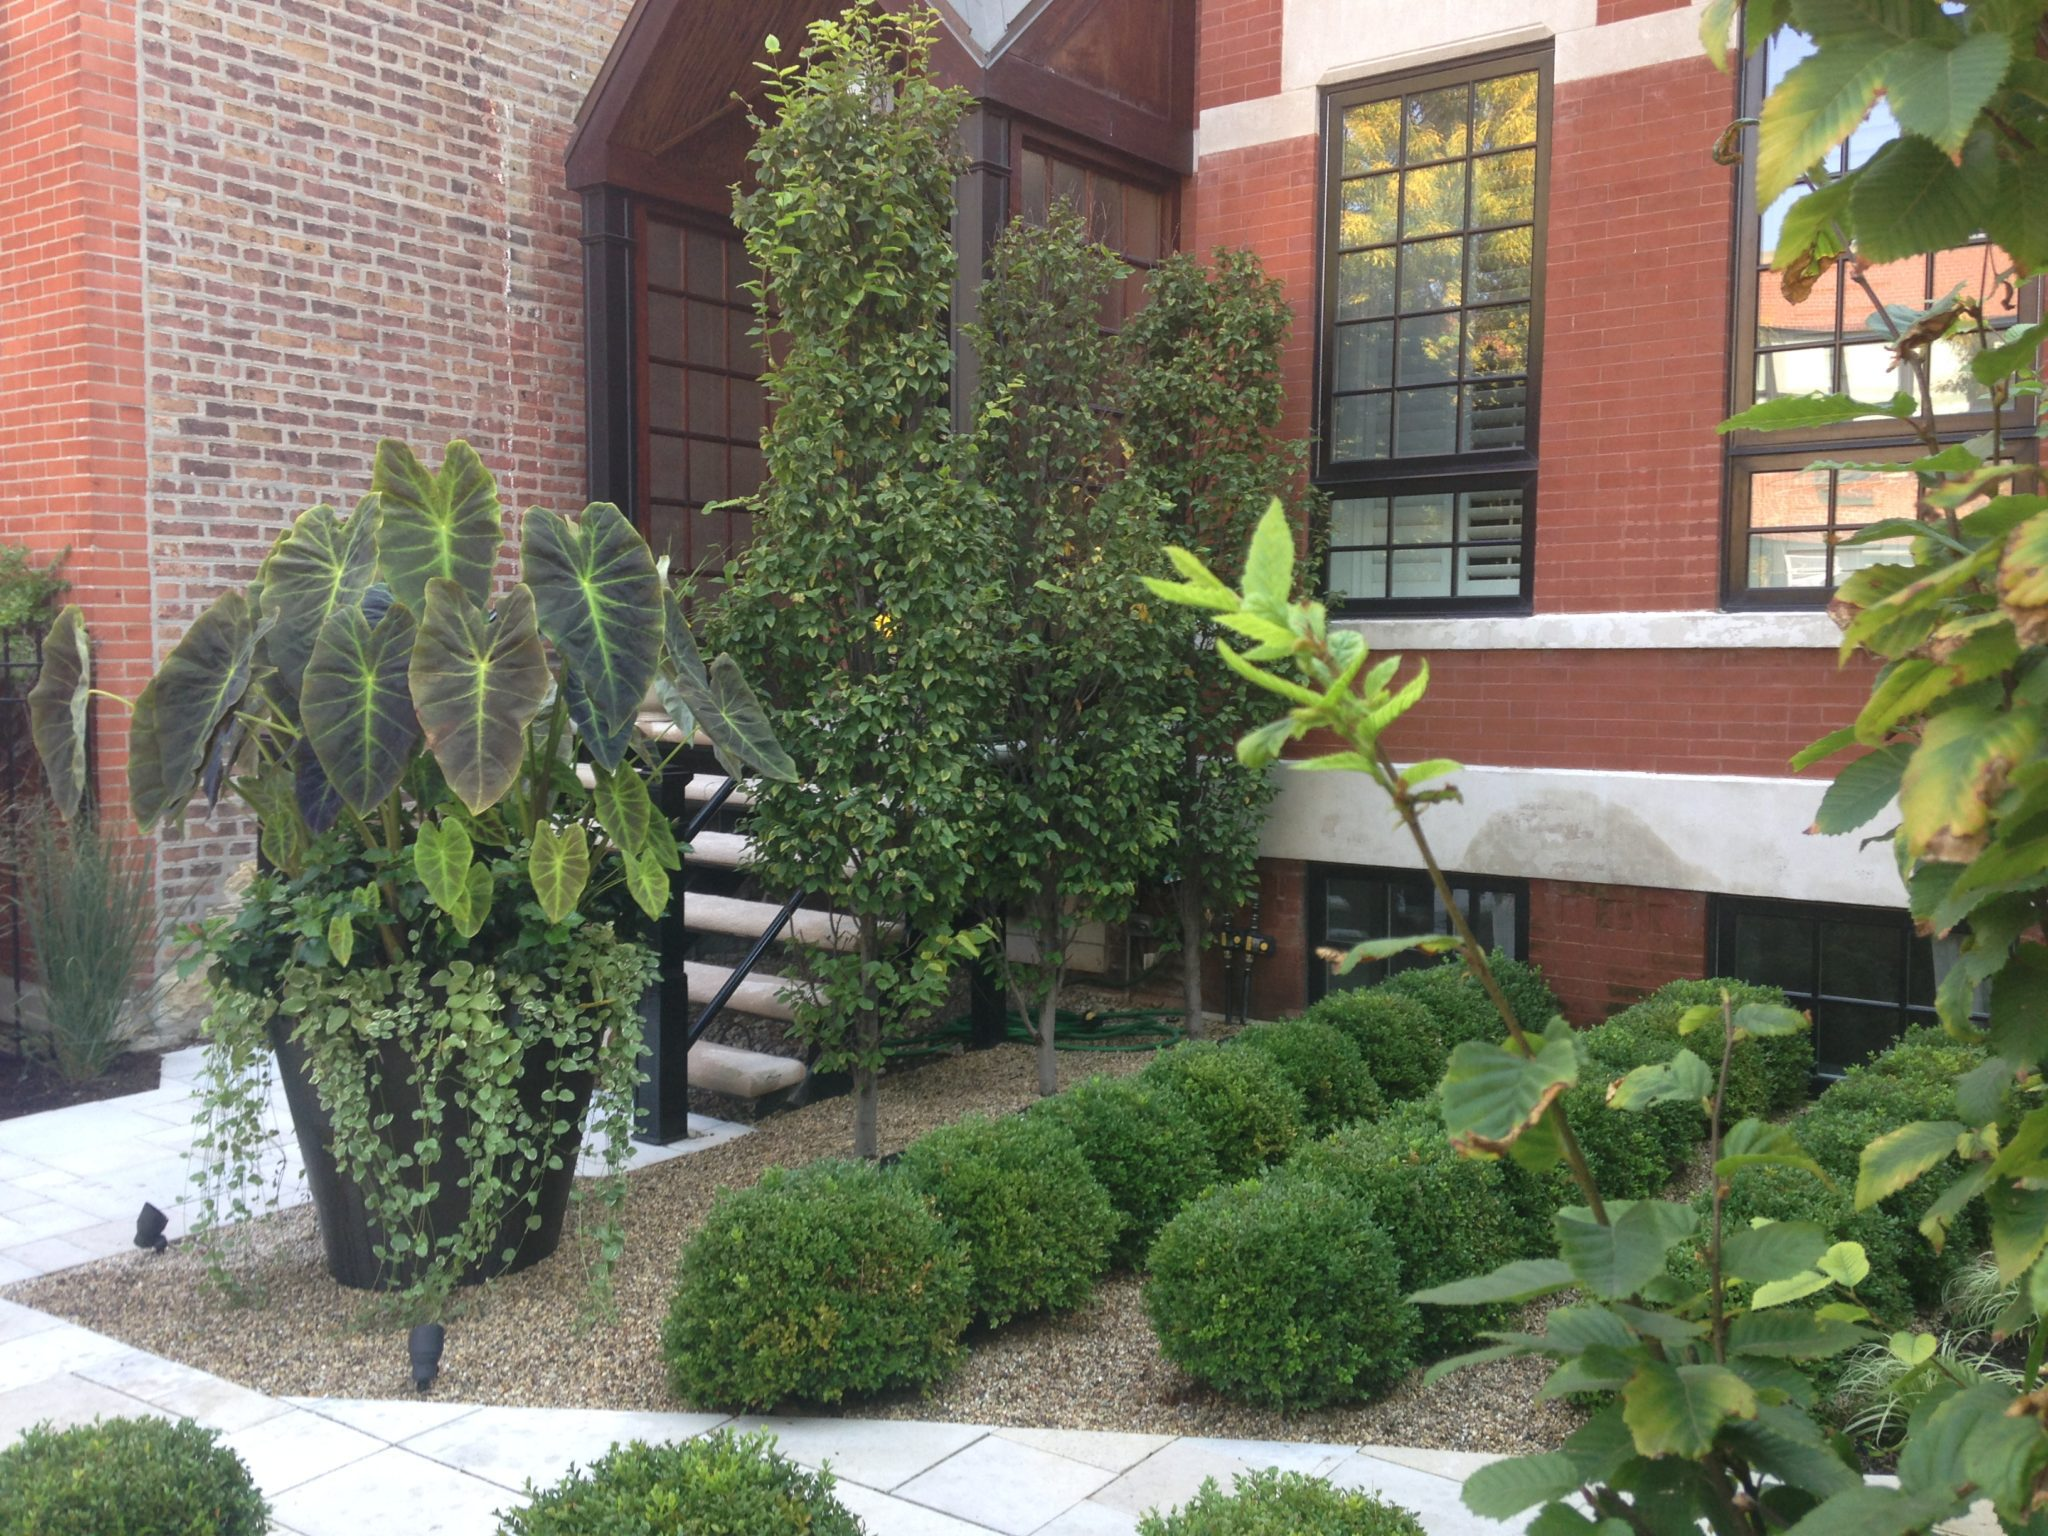 Architecture in Greenery - Chicago Landscaping Project